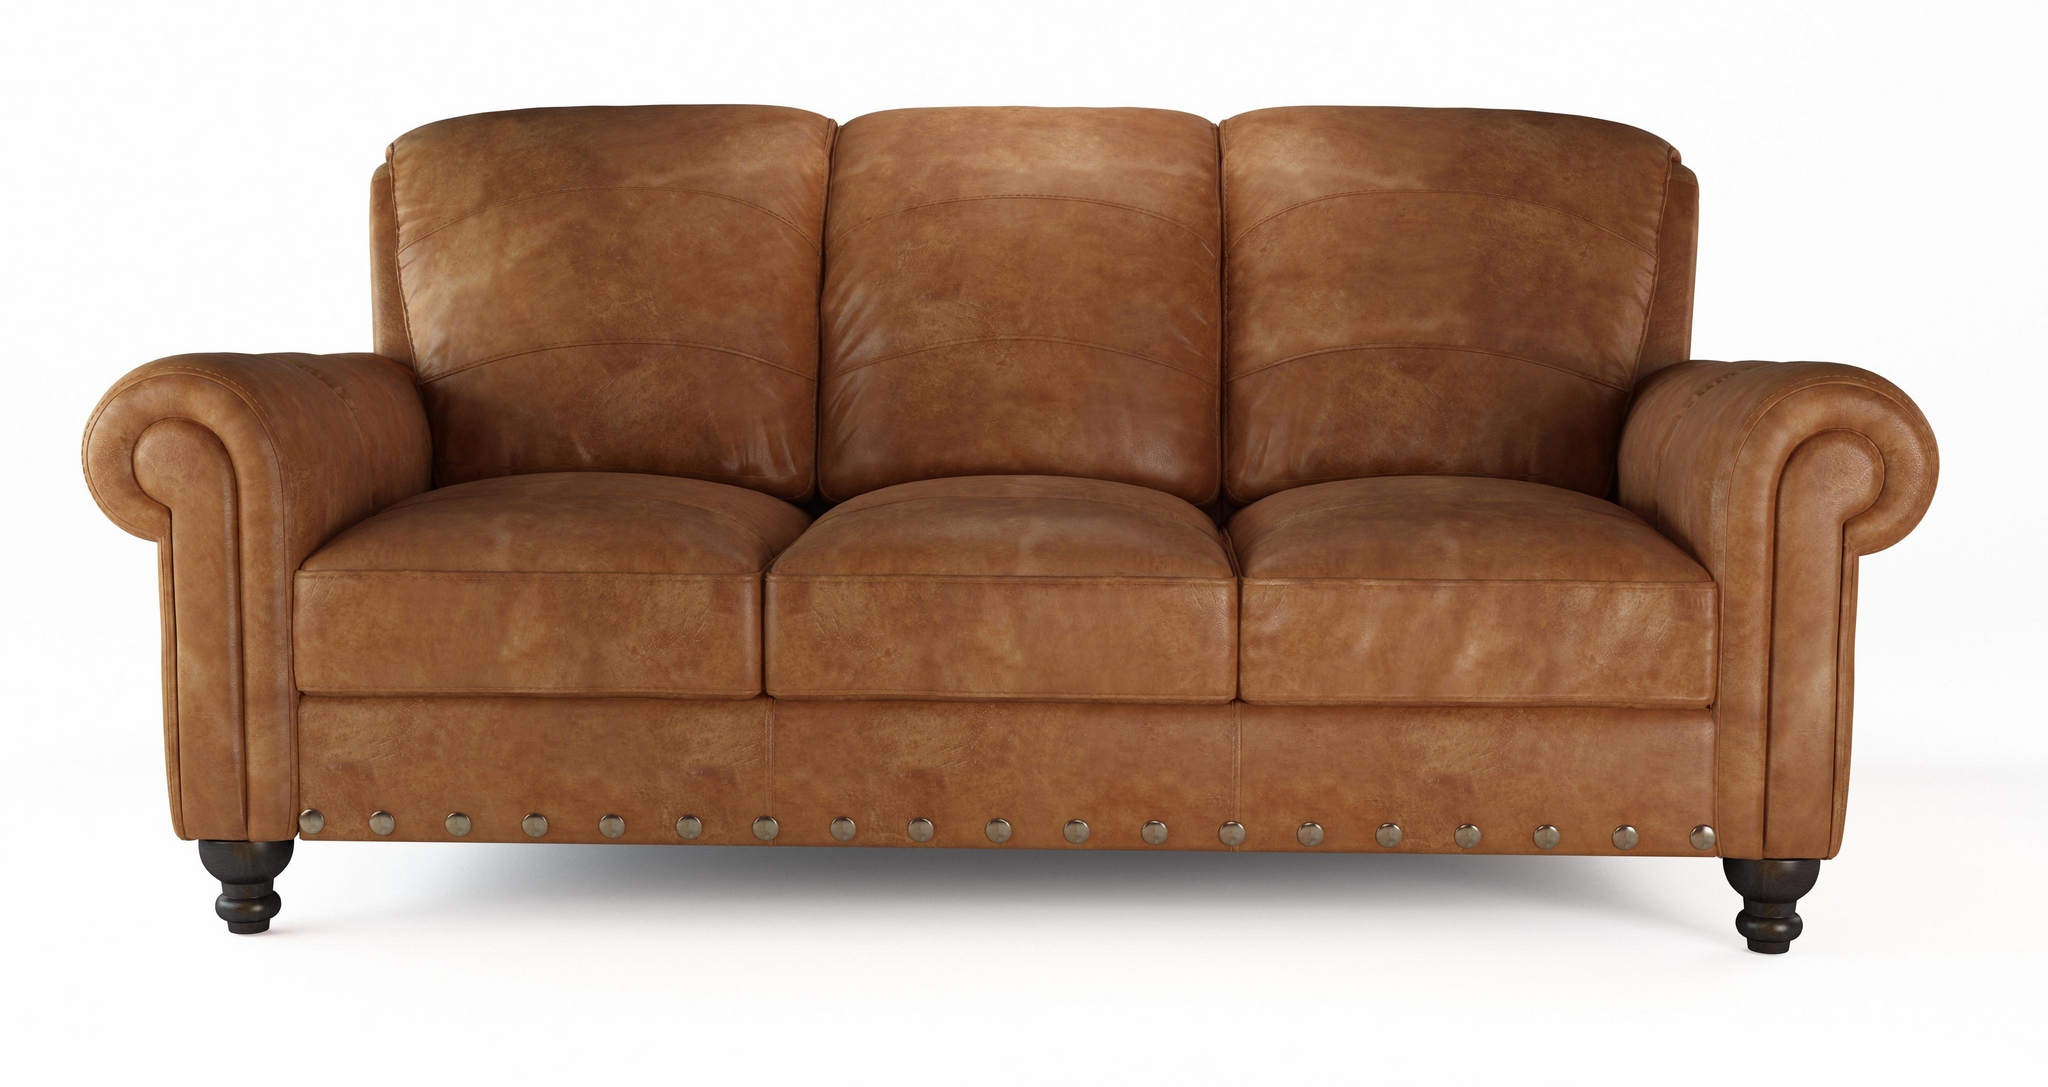 Leather sofa perth dfs perth 3 seater settee 100 real for Antique chaise lounge perth